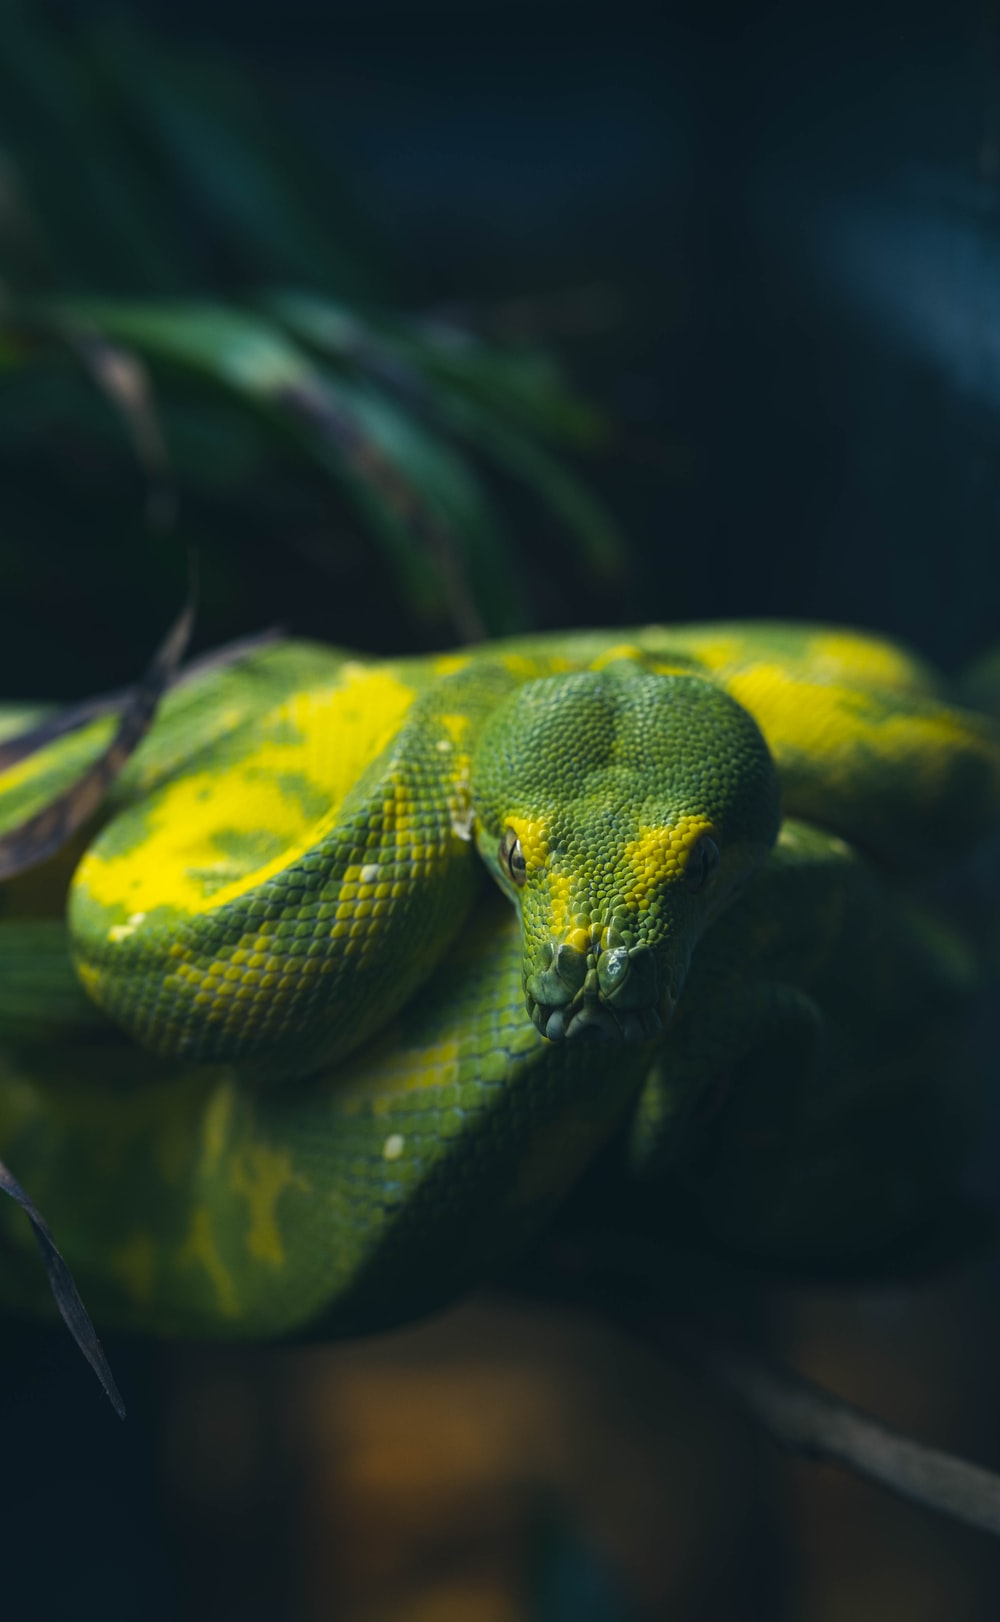 green and white snake on brown tree branch